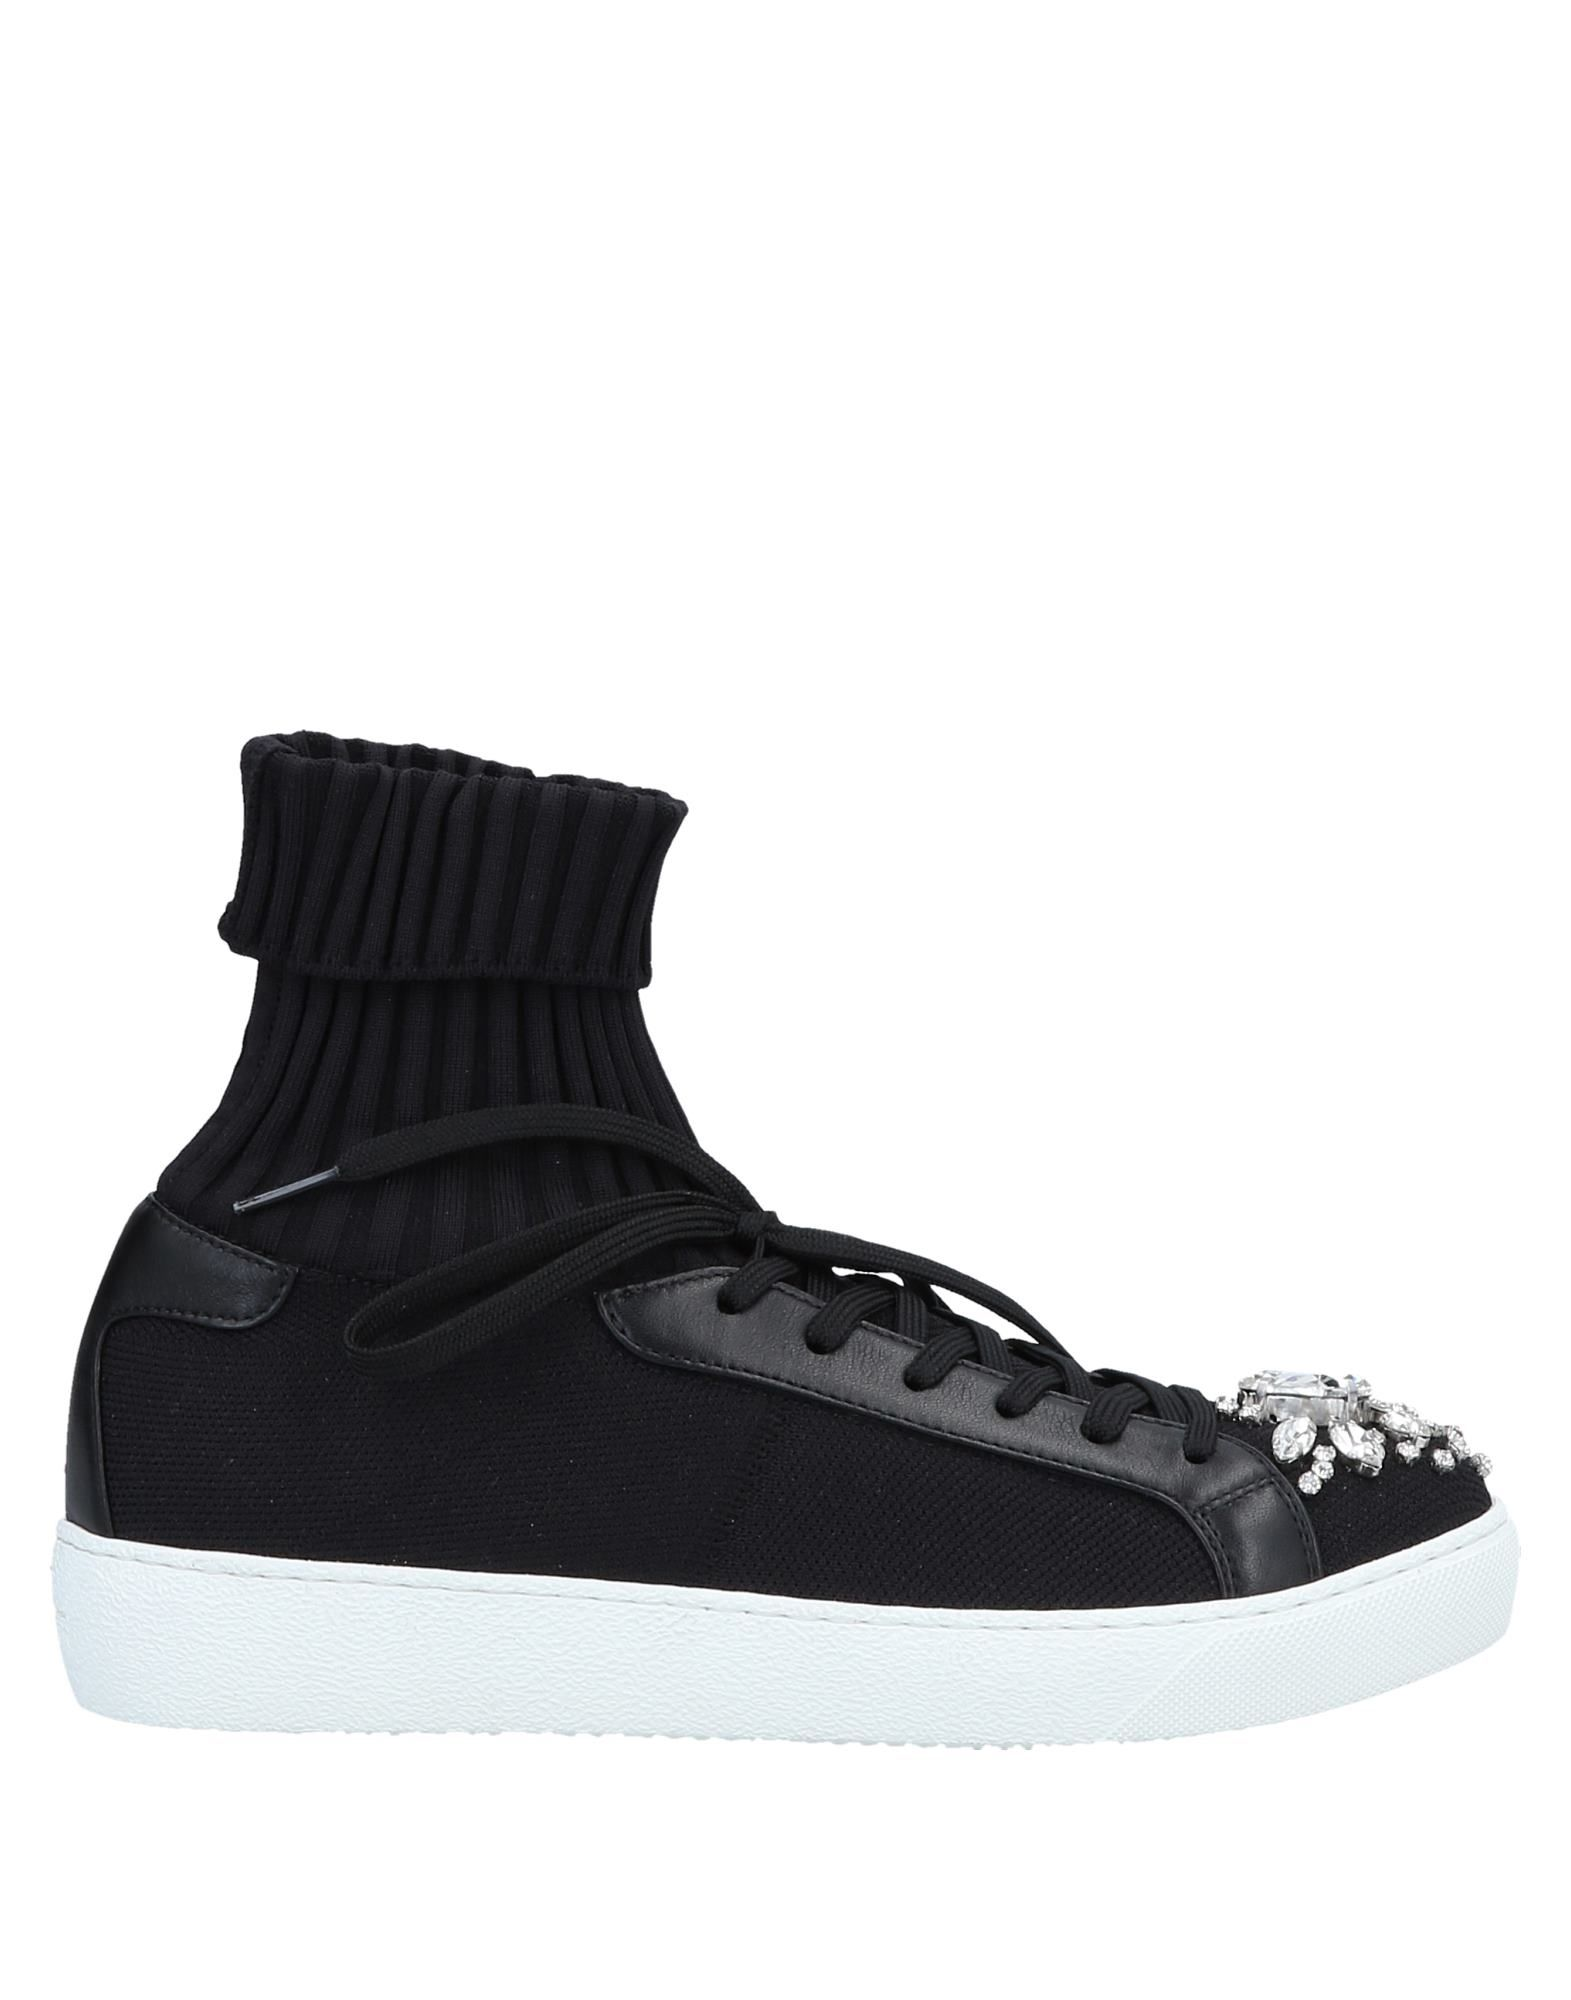 Sebastian Sneakers - Women Sebastian Sneakers online on 11562433HD  United Kingdom - 11562433HD on 2cbe98